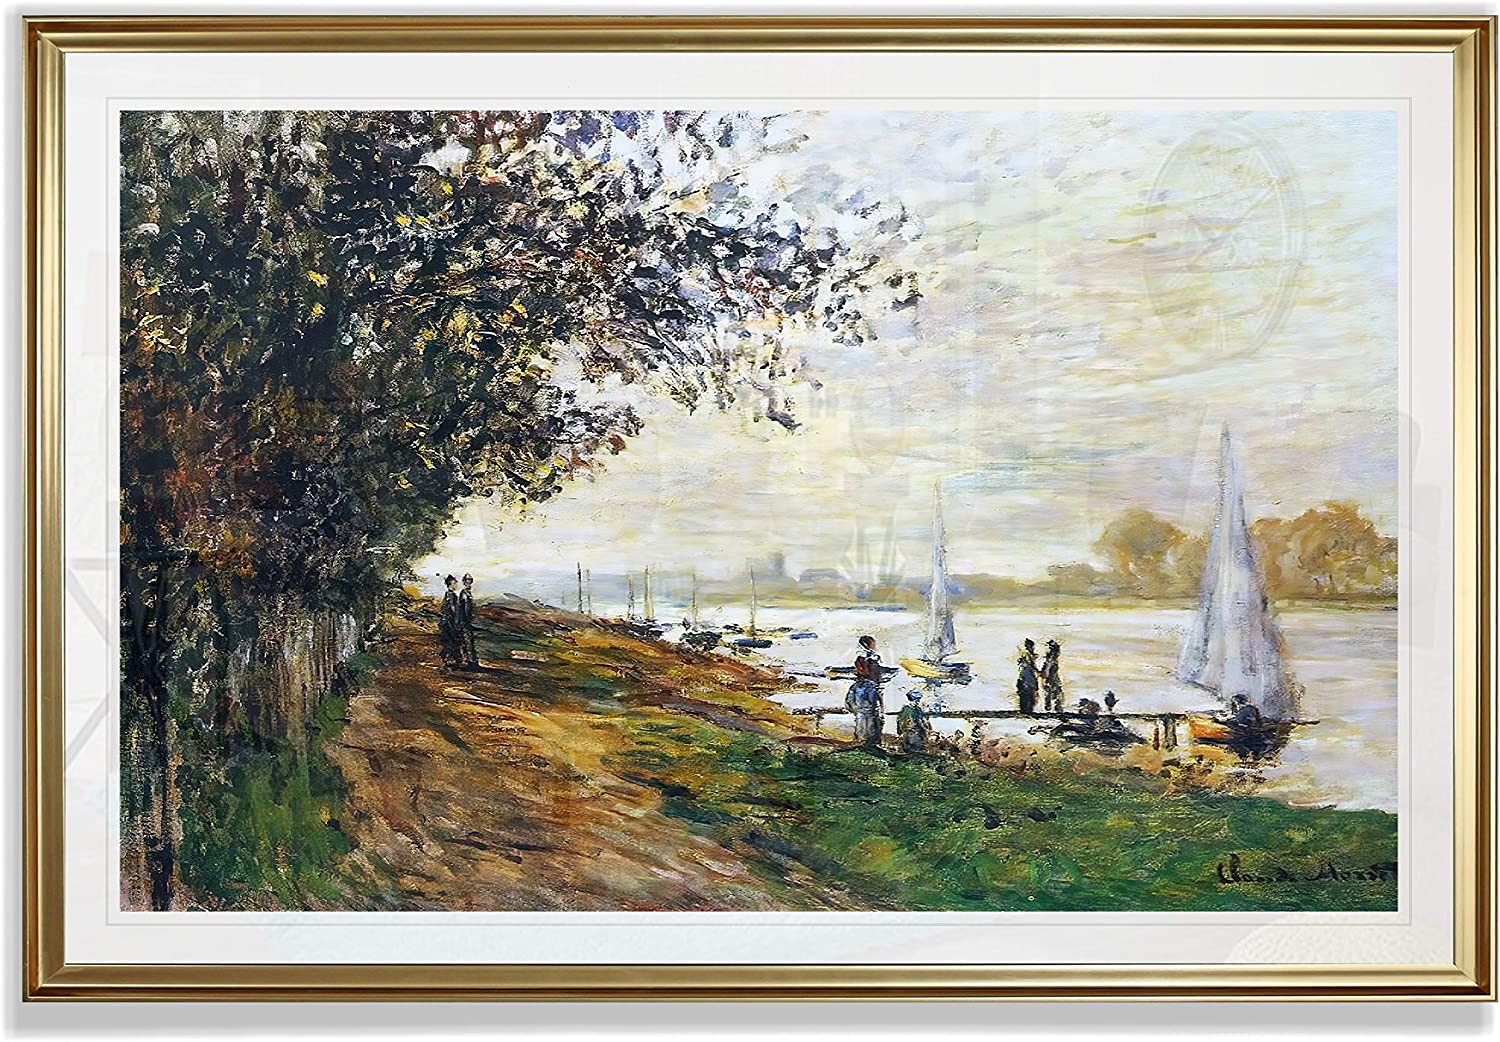 Monet Wall Art Collection The The Riverbank at Le Petit-Gennevilliers, Sunset, 1875 Fine Giclee Prints Wall Art in Premium Quality Framed Ready to Hang 28X48, Gold